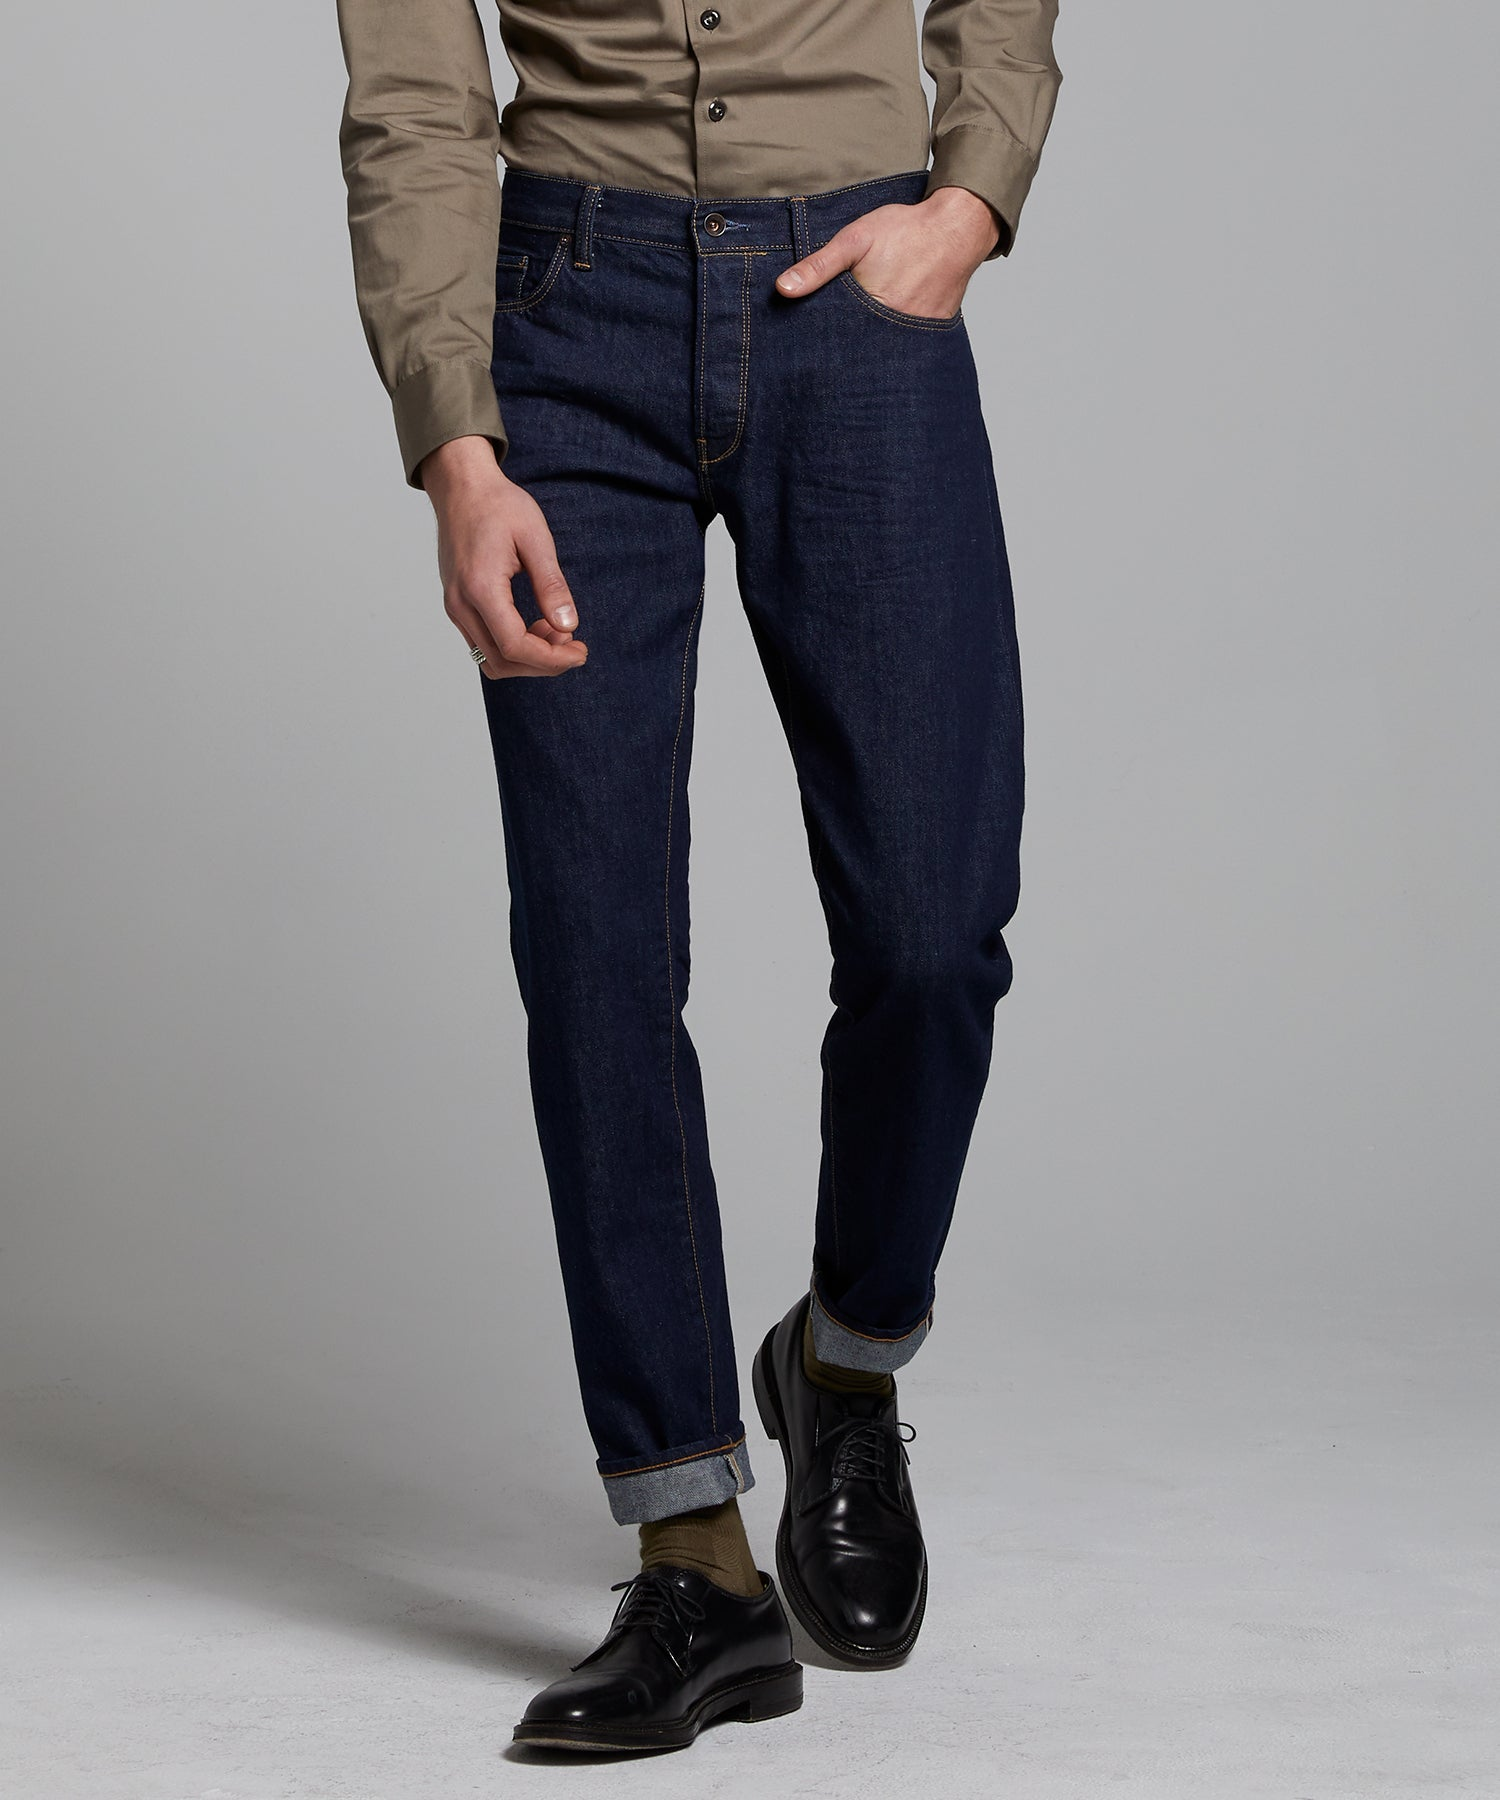 Slim Fit Selvedge Jean in Indigo Rinse